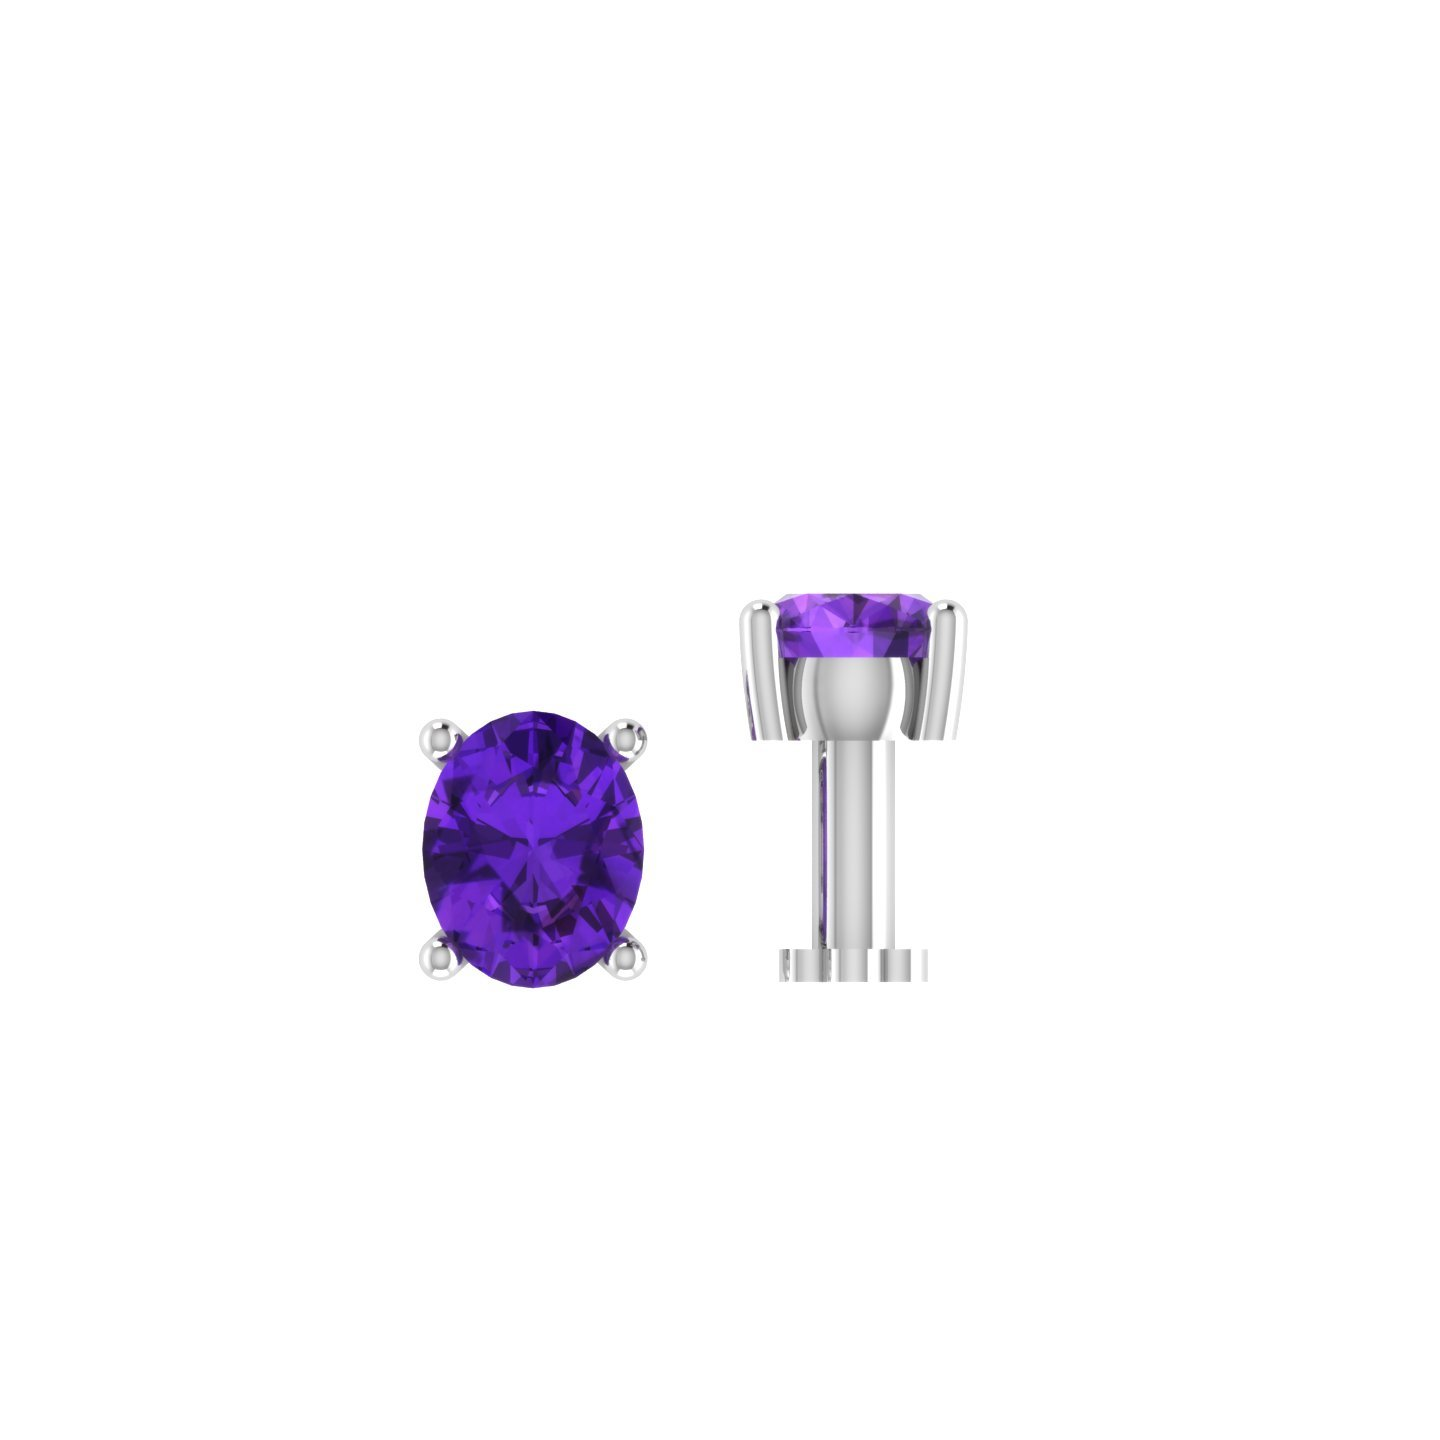 Silvercz Jewels 0.15 Ct Amethyst Solitaire Nose Bone 925 Sterling Silver Screw Stud Piercing Ring Pin